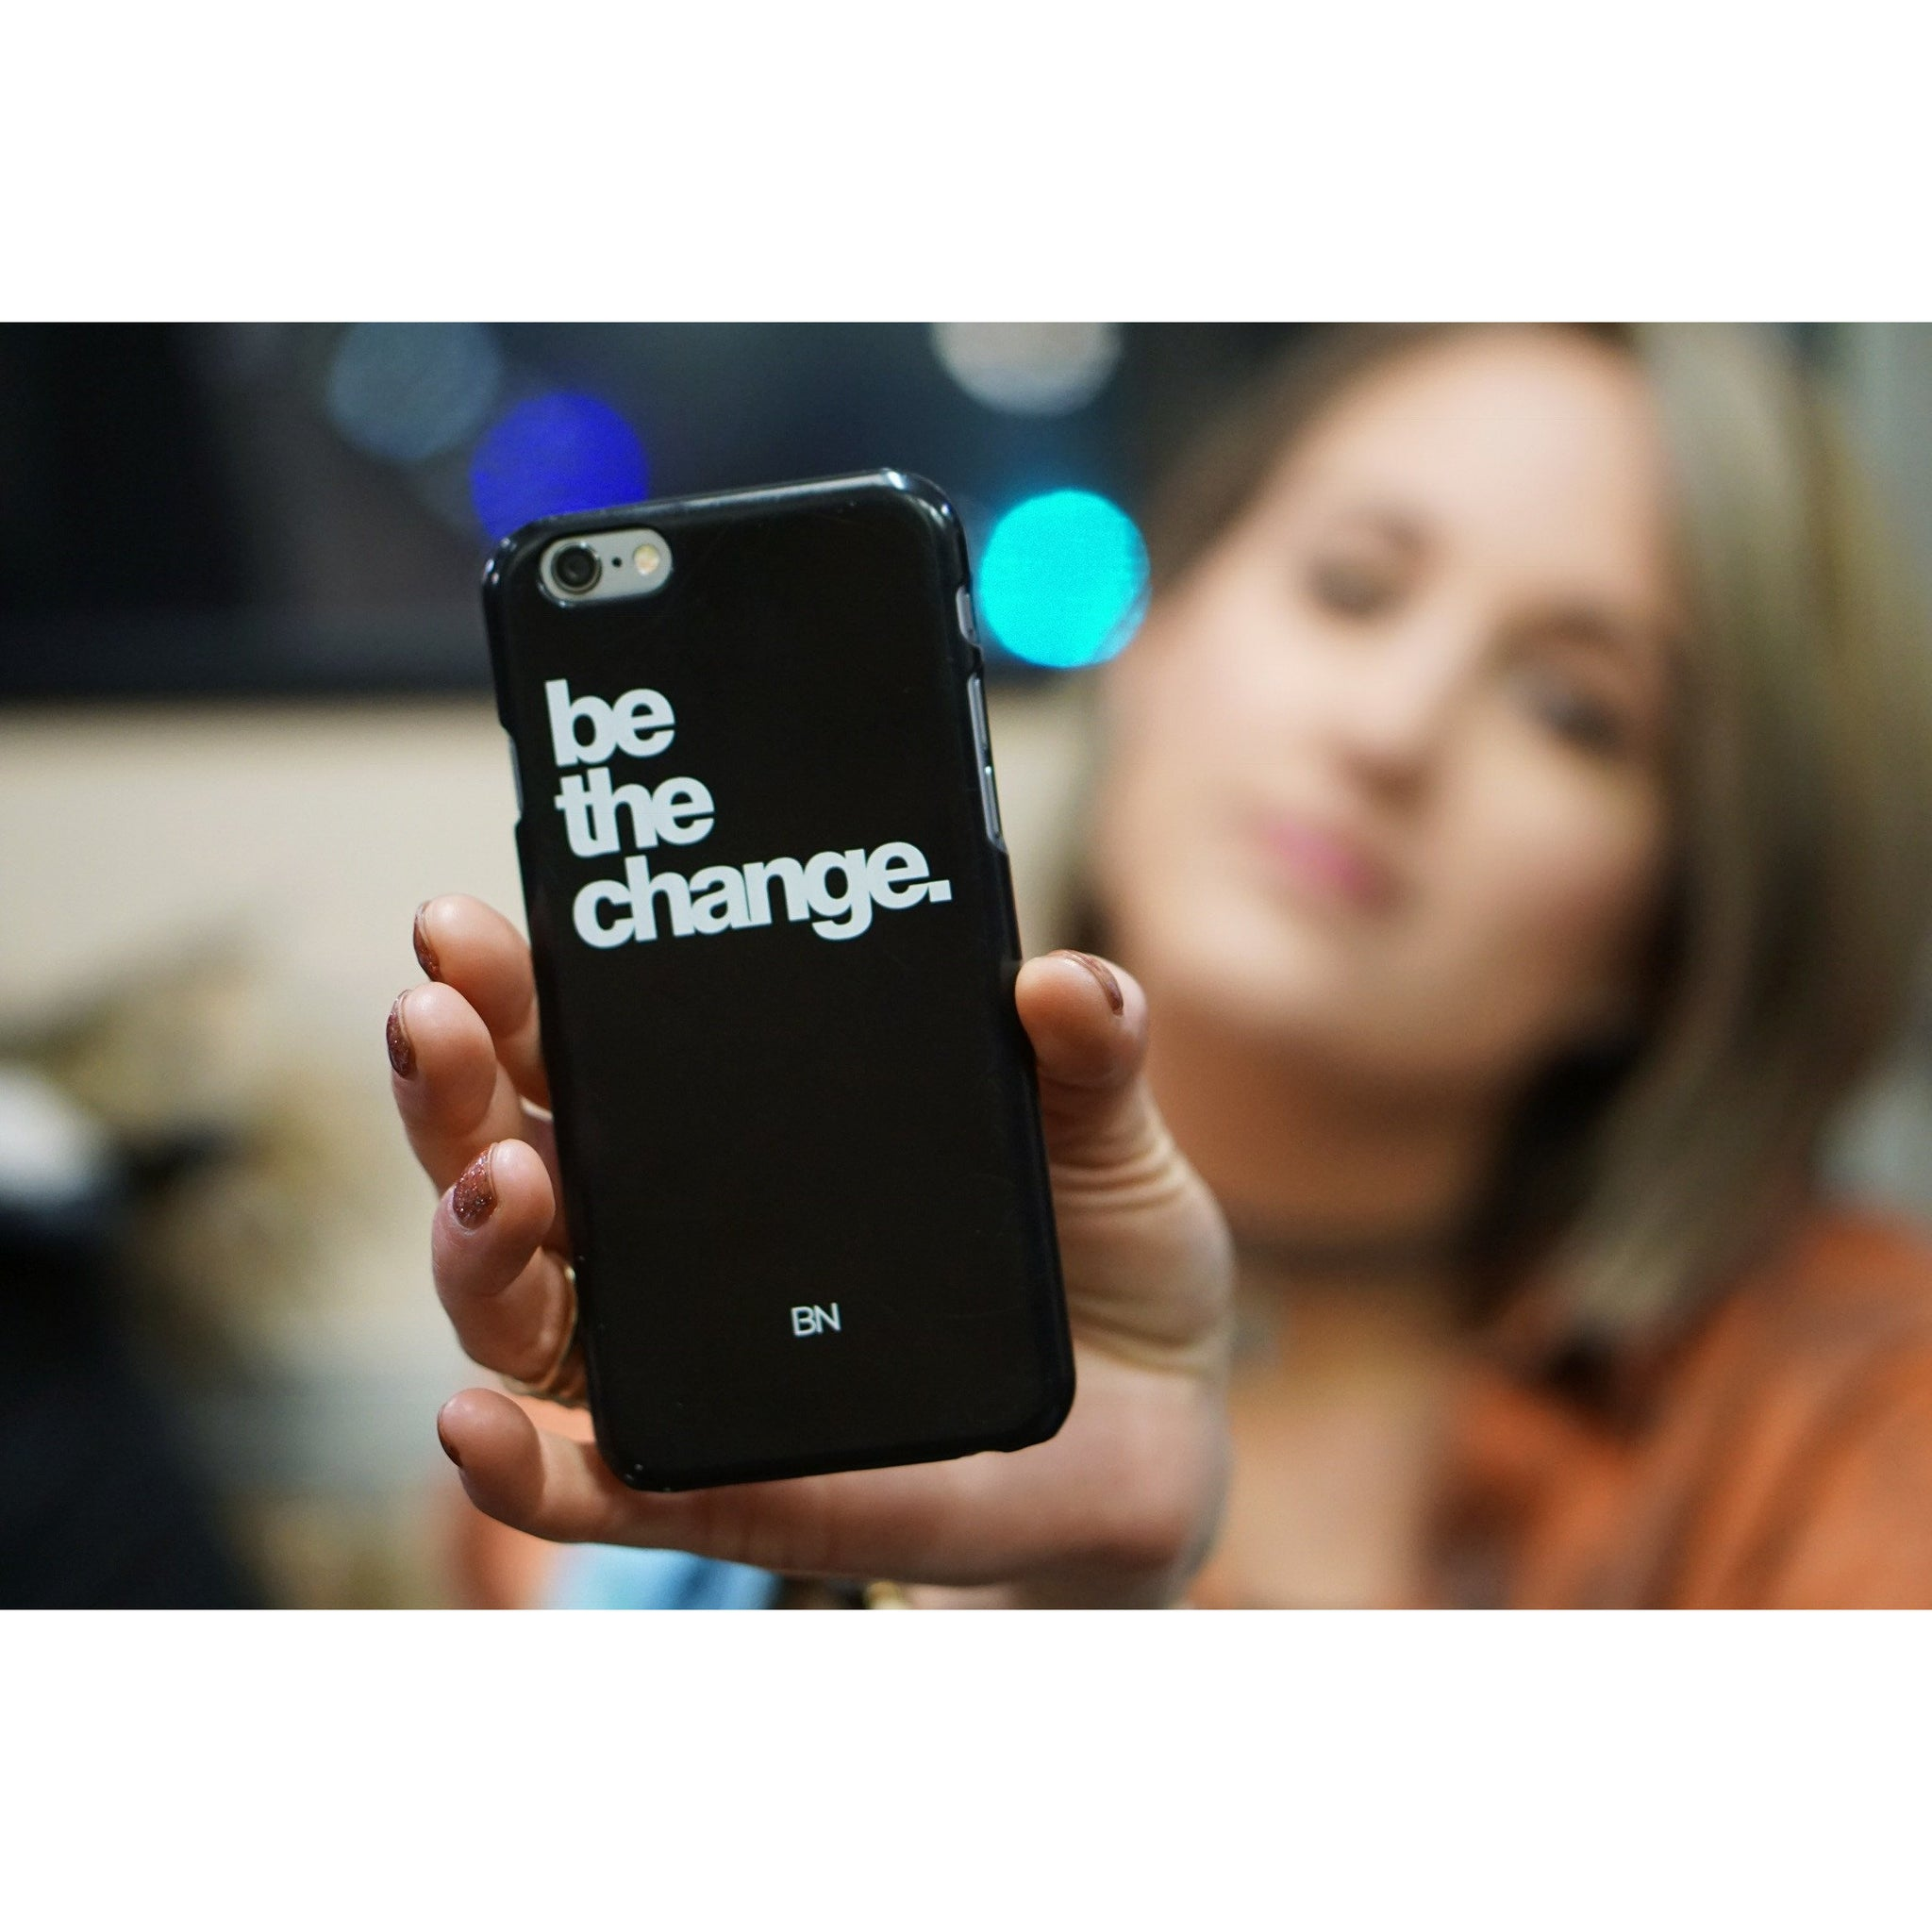 Be the Change | iPhone case